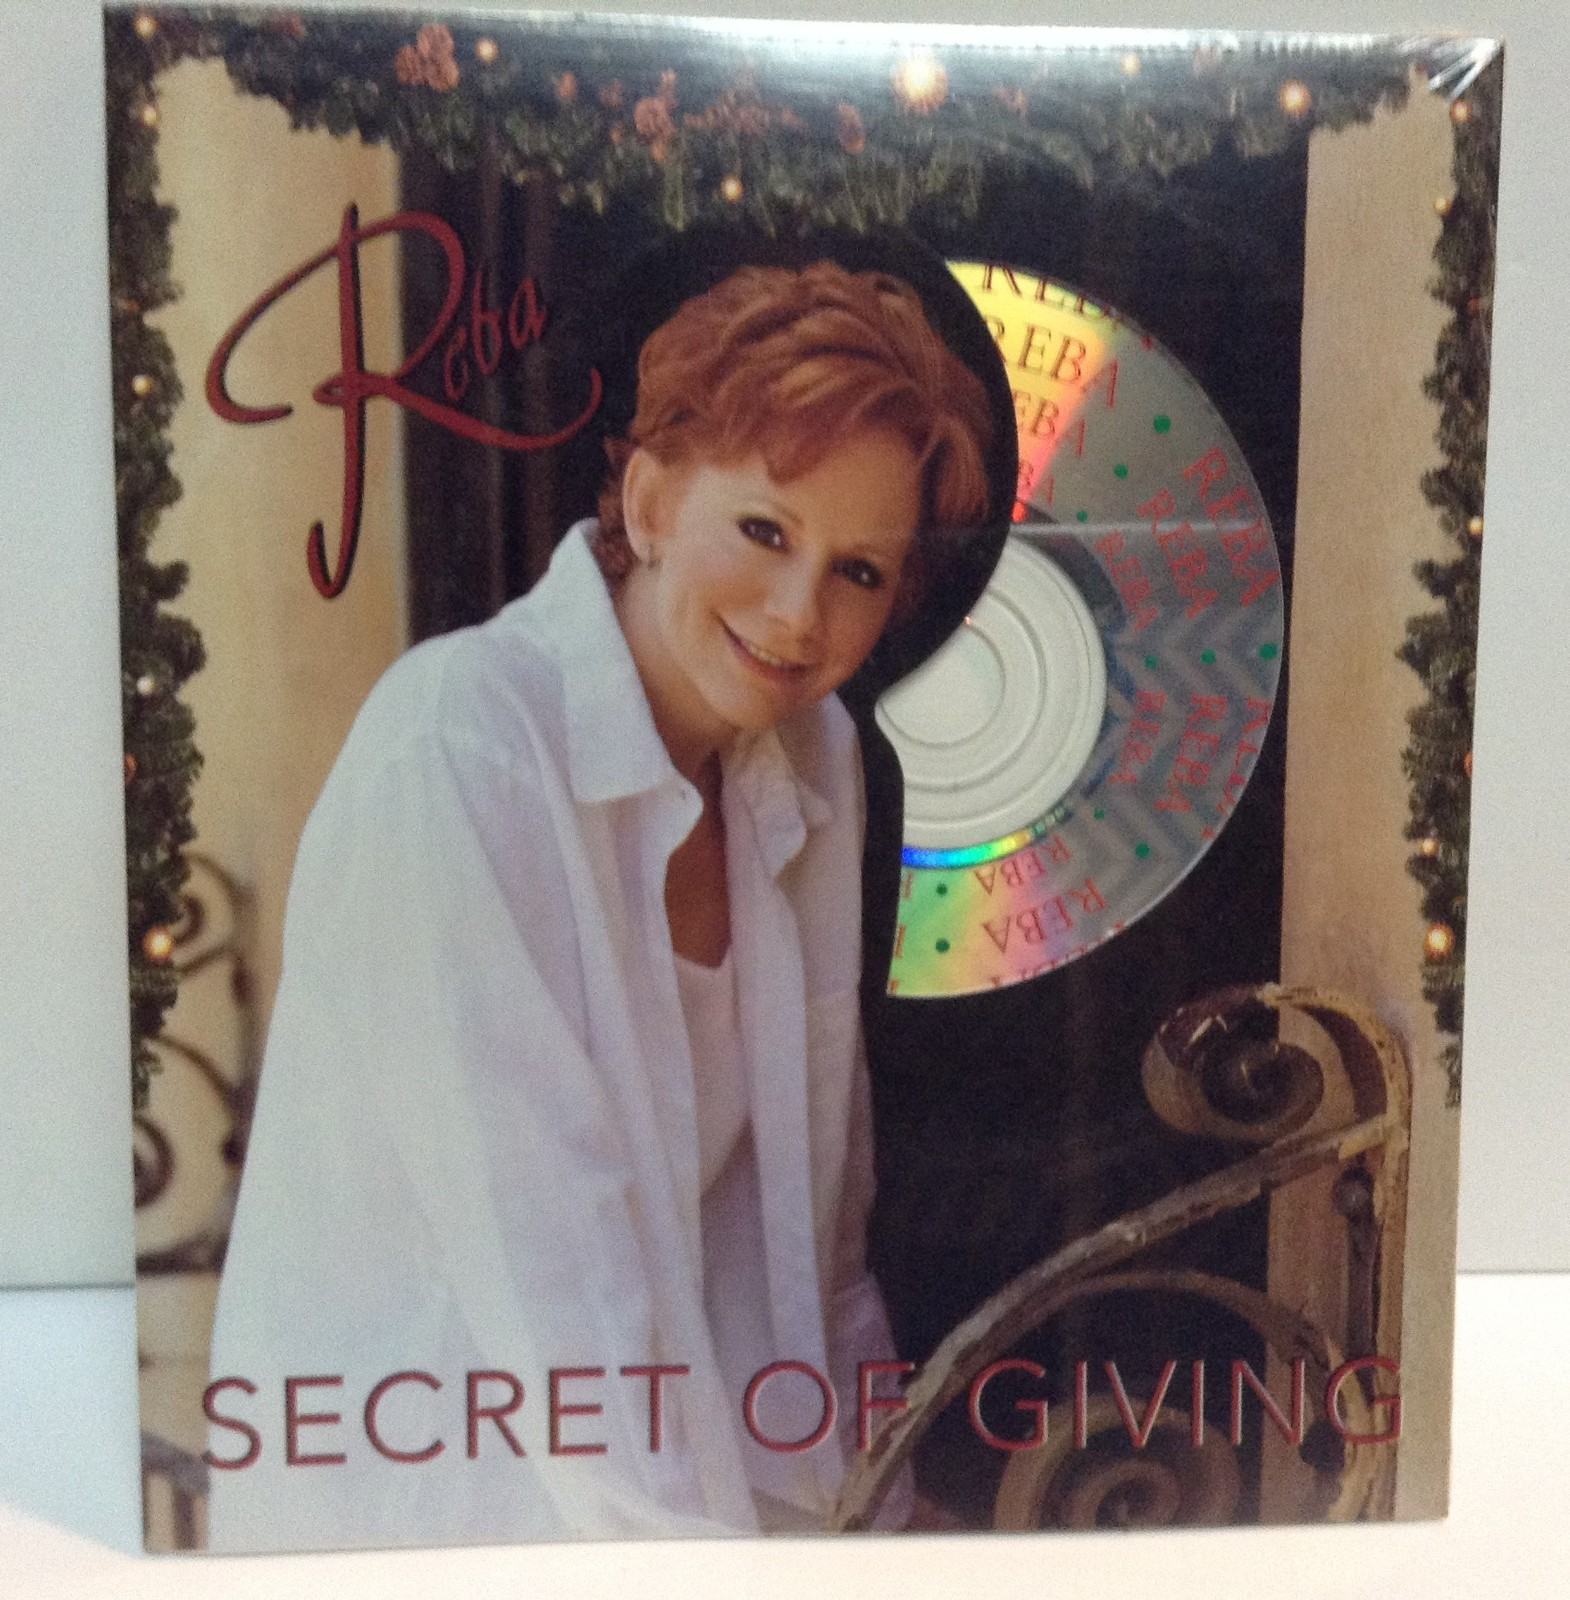 Reba McEntire Secret of Giving CD Gift Holiday Card New Sealed